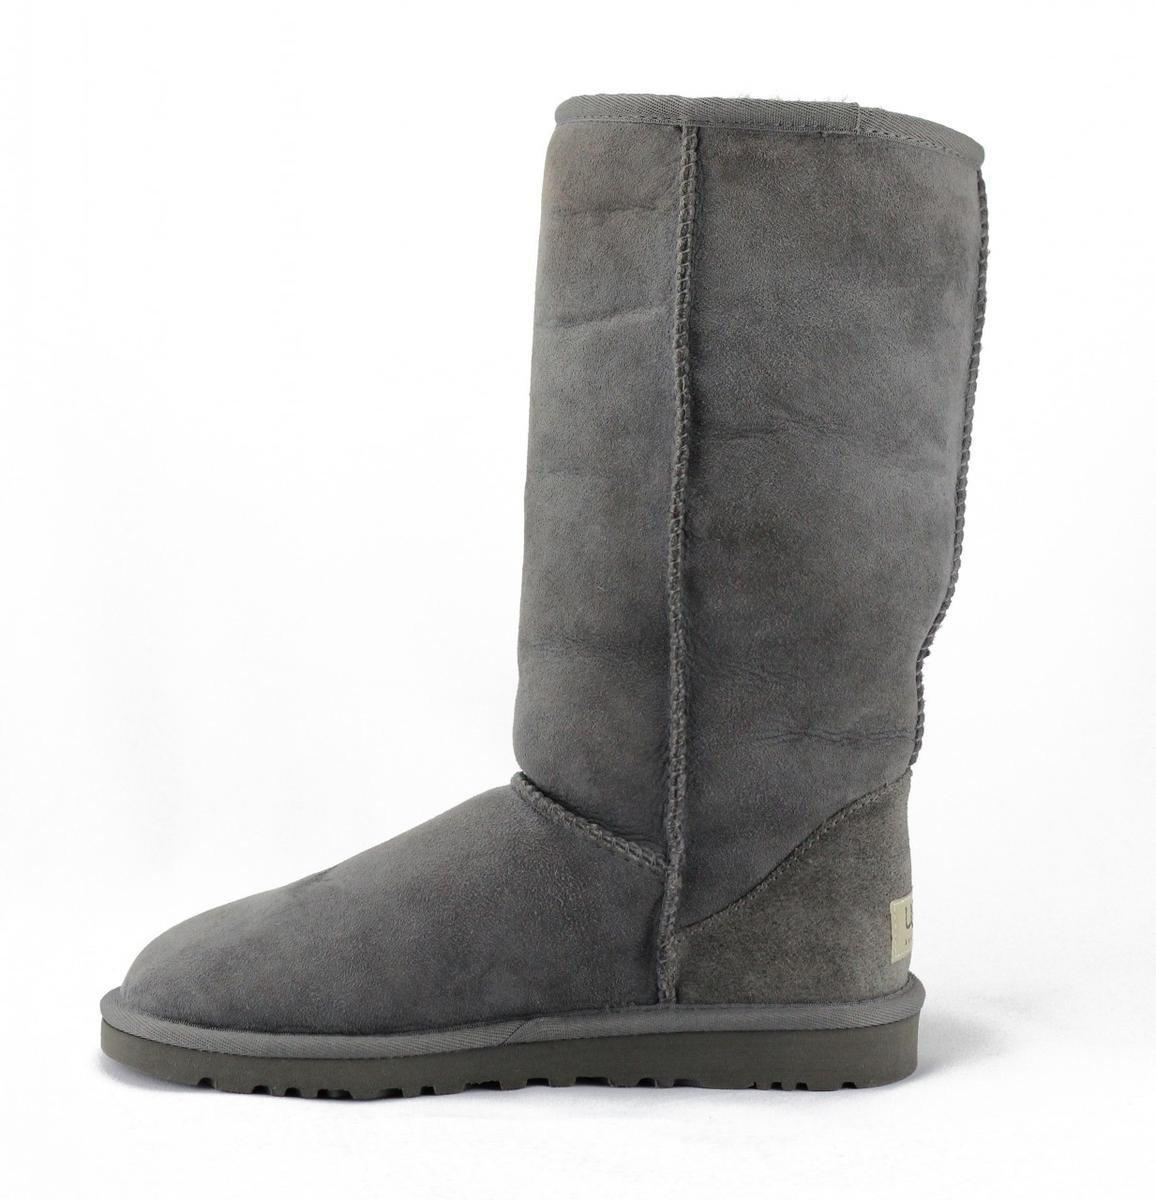 UGG Classic Tall Grey Boots in Gray - Lyst